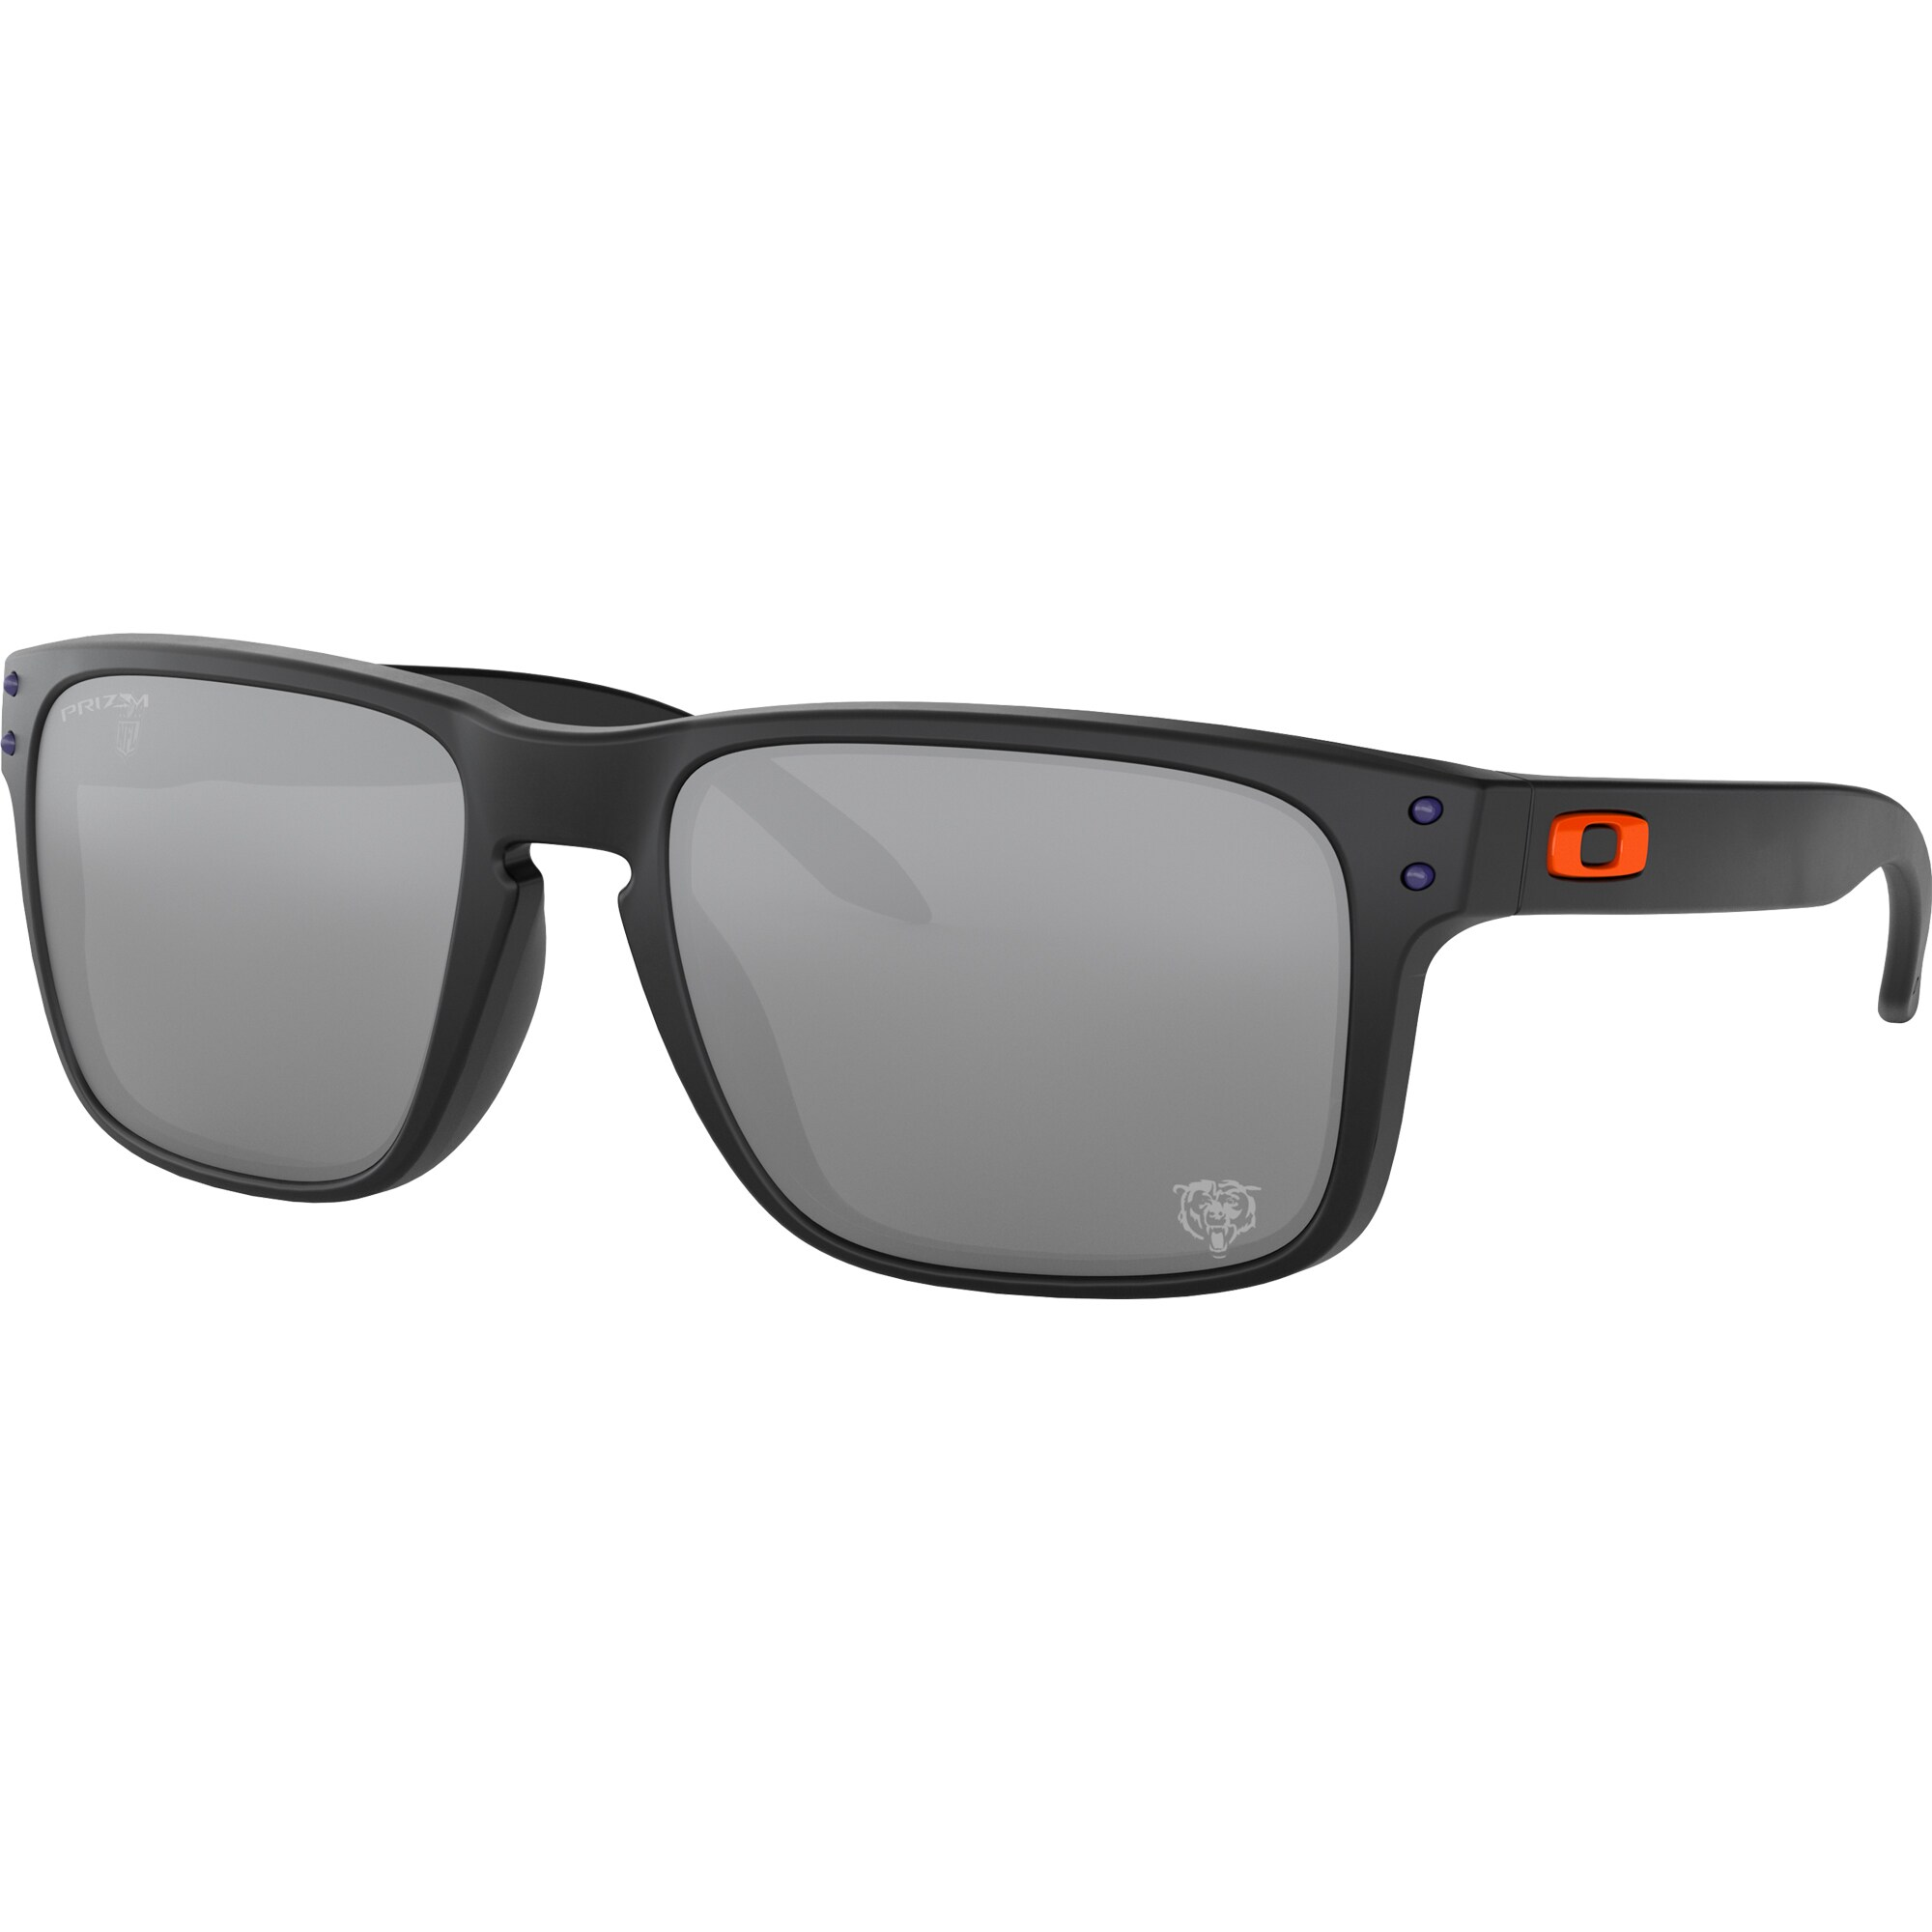 Chicago Bears Oakley Holbrook Sunglasses